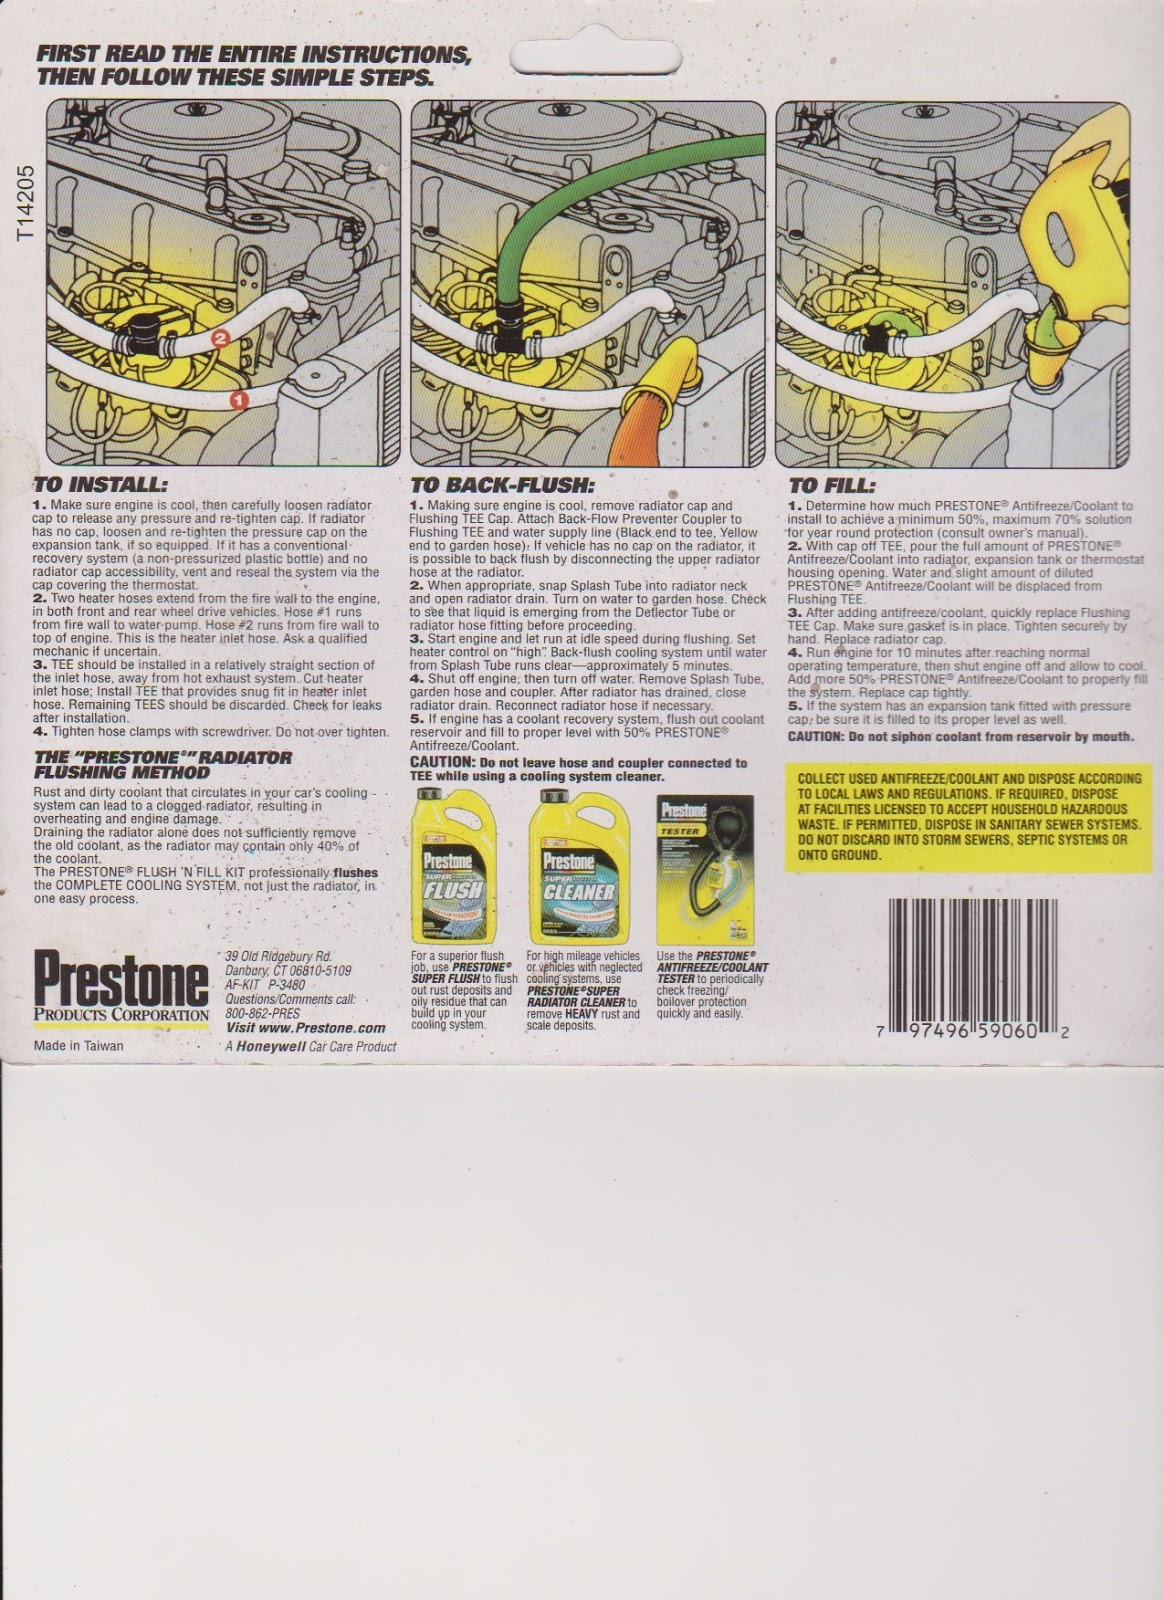 How to use a radiator flush kit with pictures and videos.